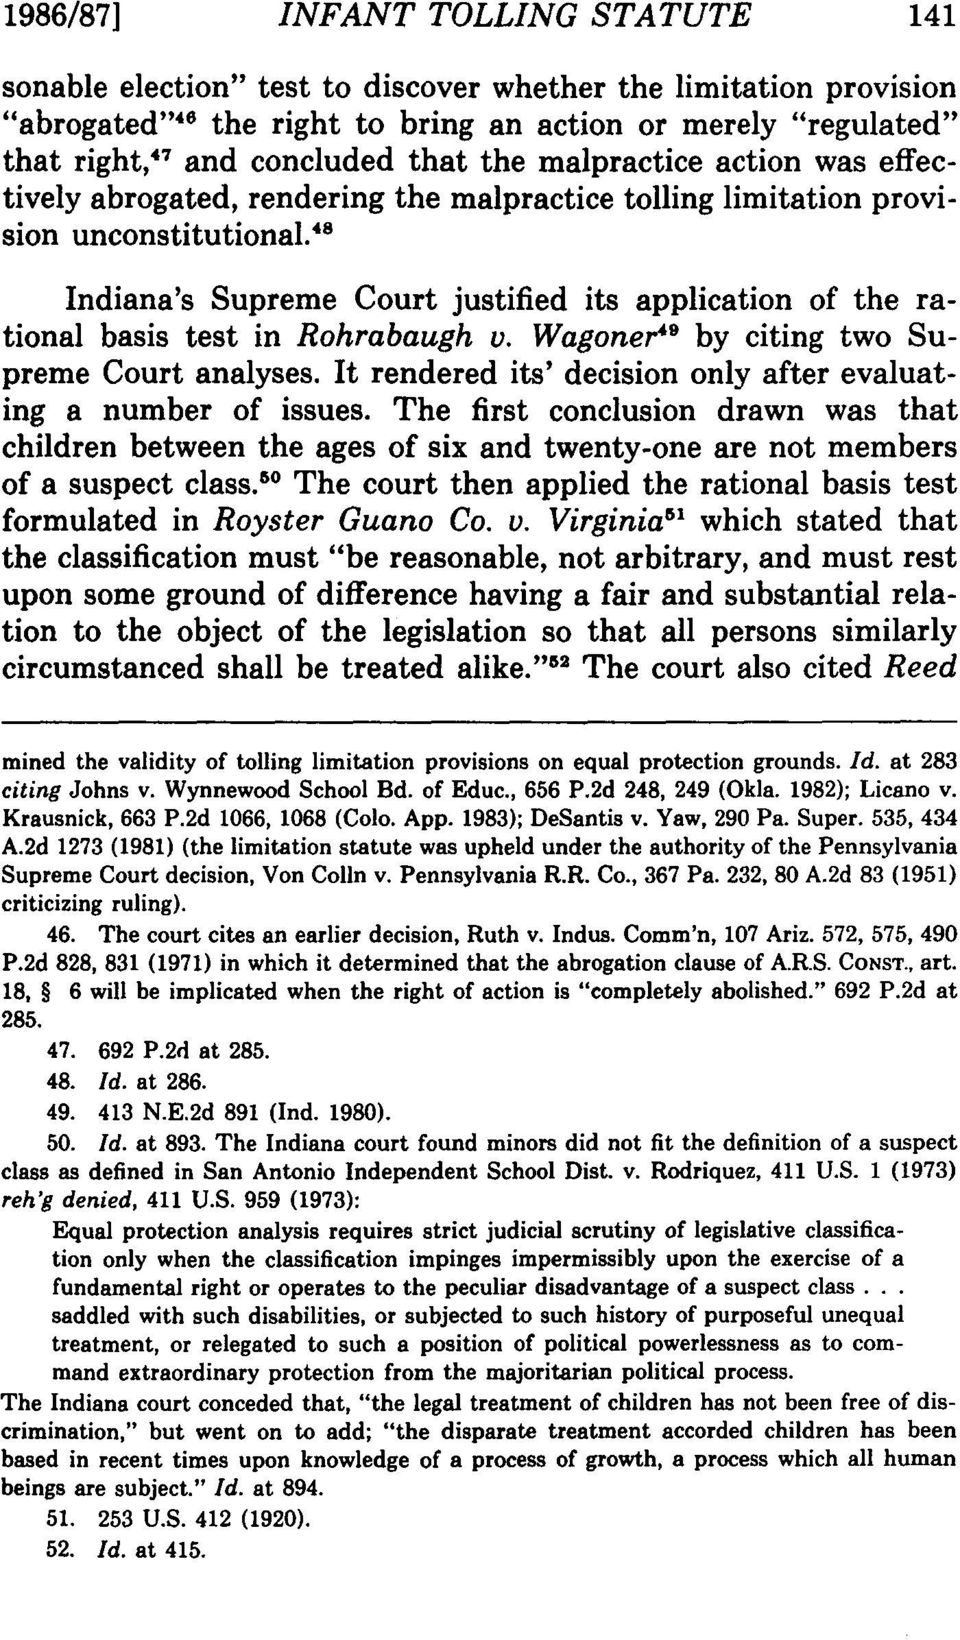 "' 8 Indiana's Supreme Court justified its application of the rational basis test in Rohrabaugh v. Wagoner'"" by citing two Supreme Court analyses."